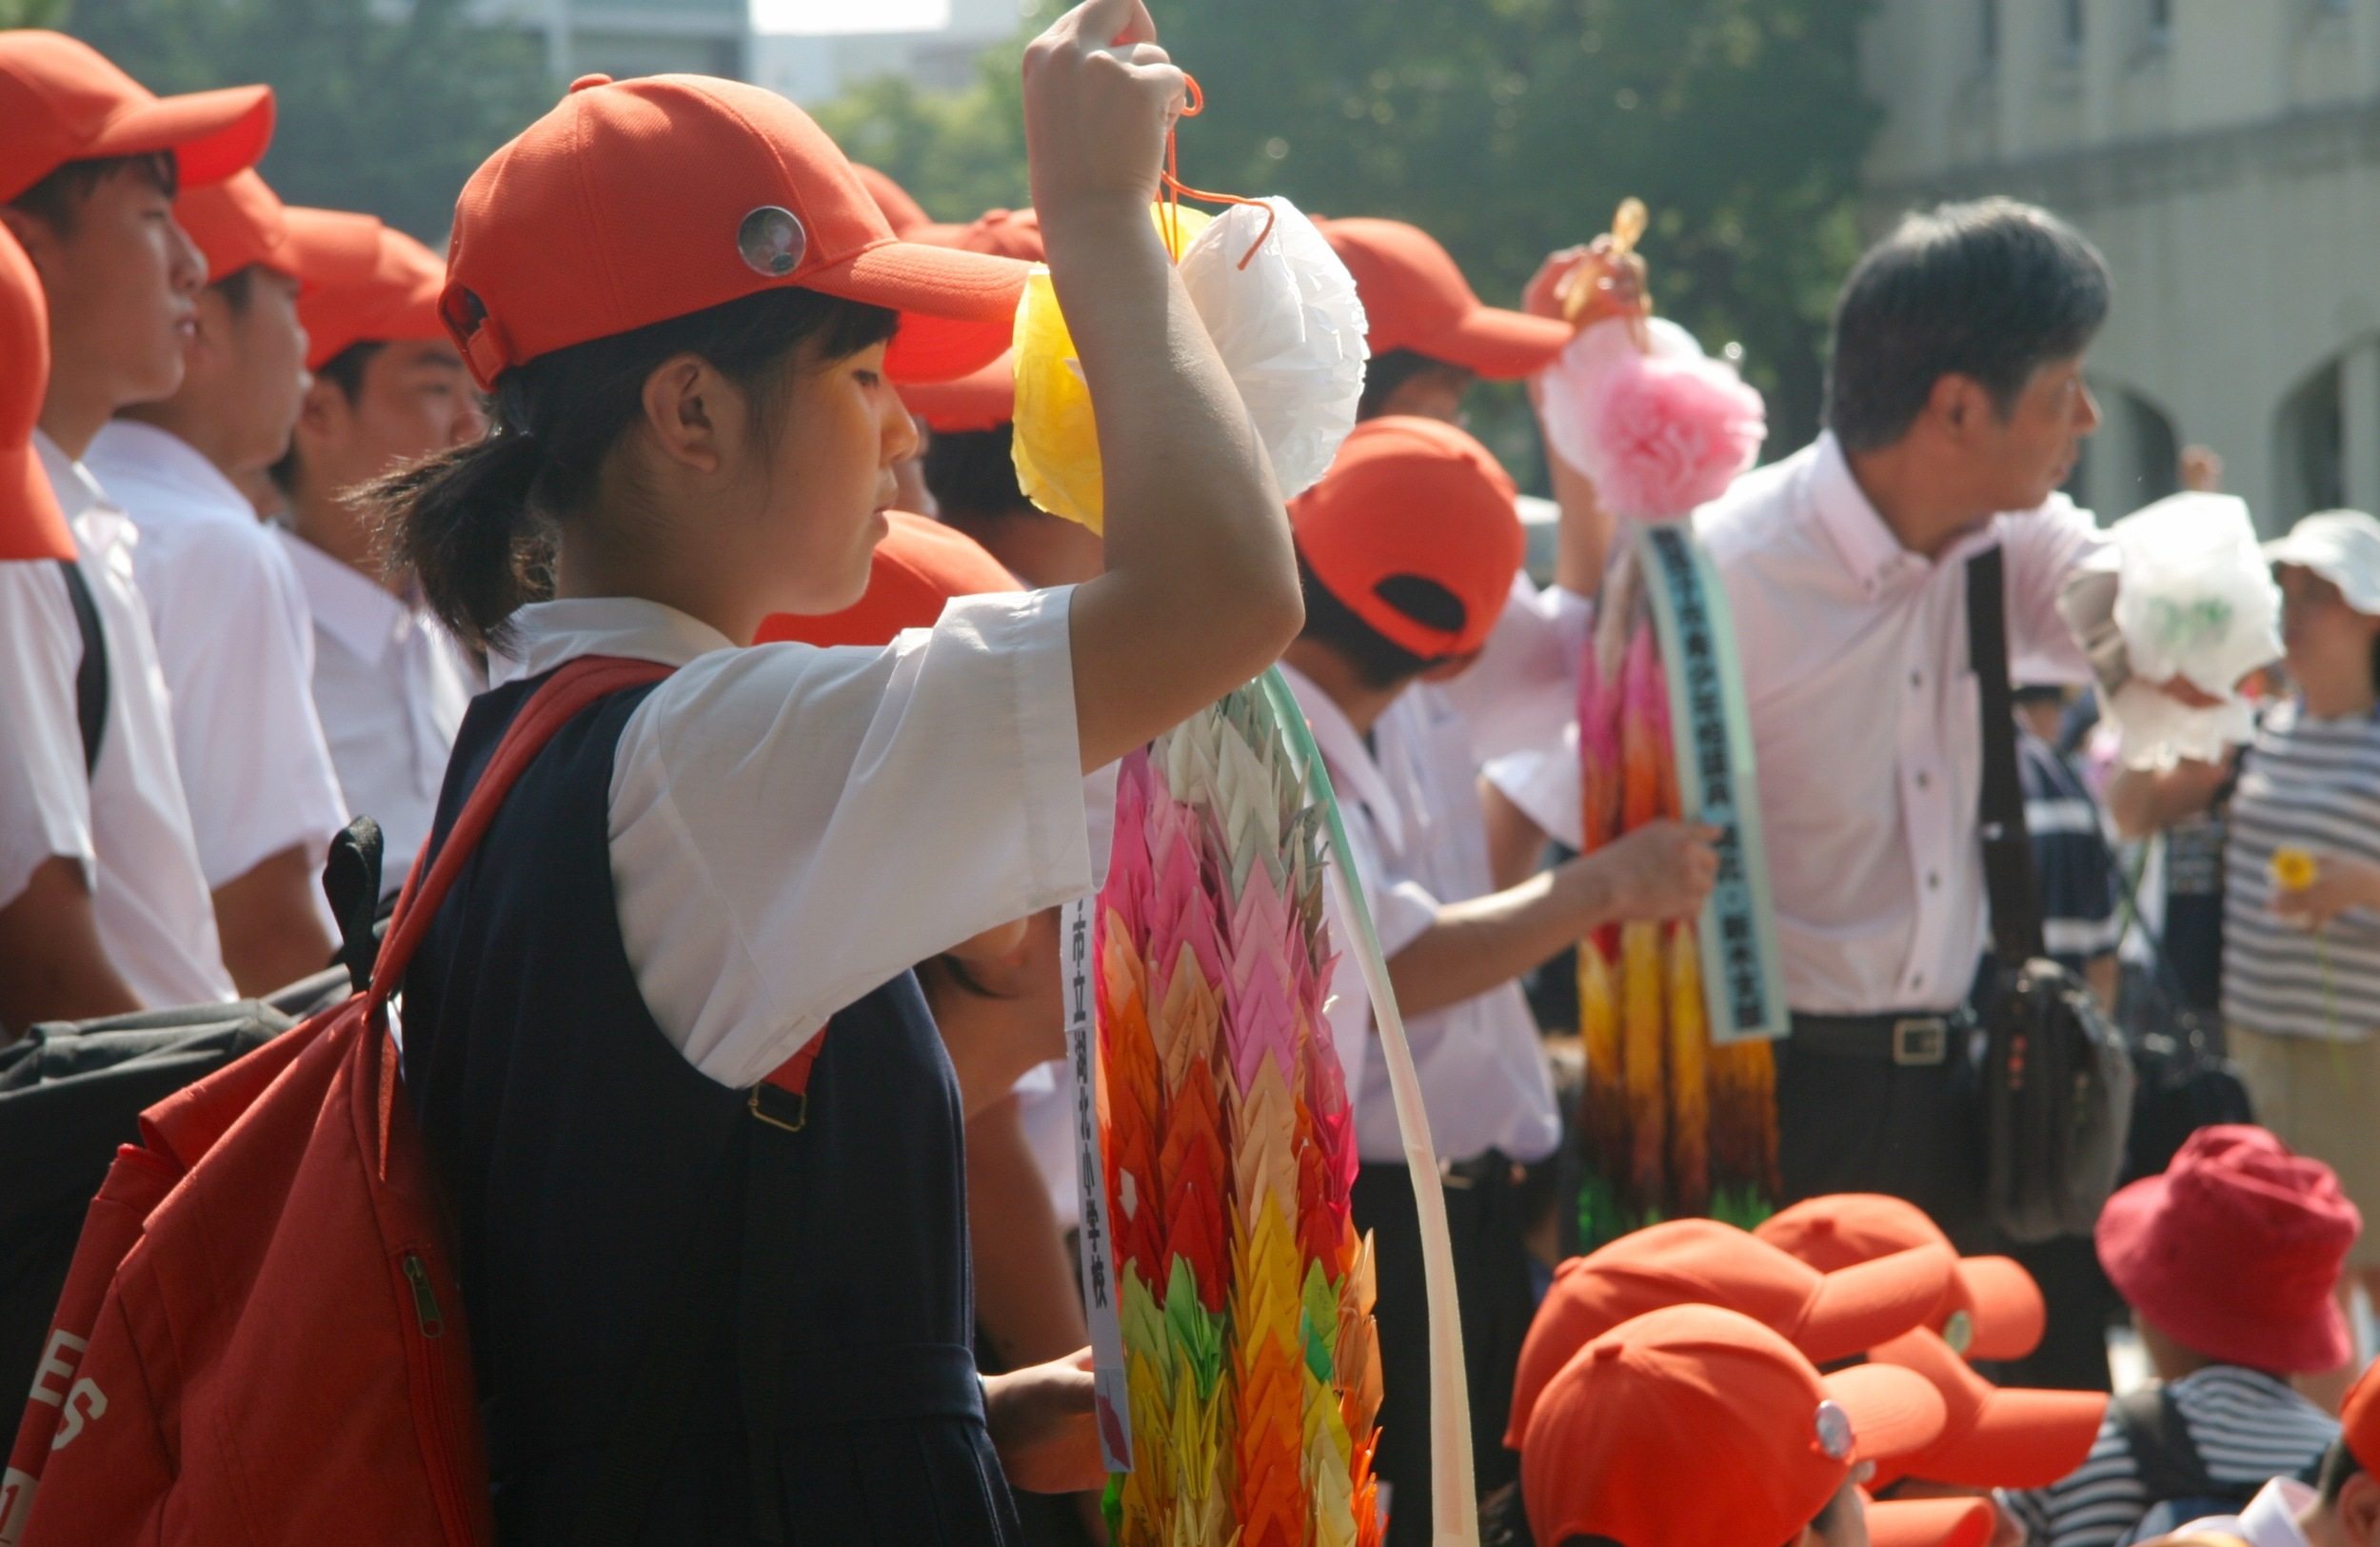 Classes of students brought cranes to honour the children who died as a result of the bombing